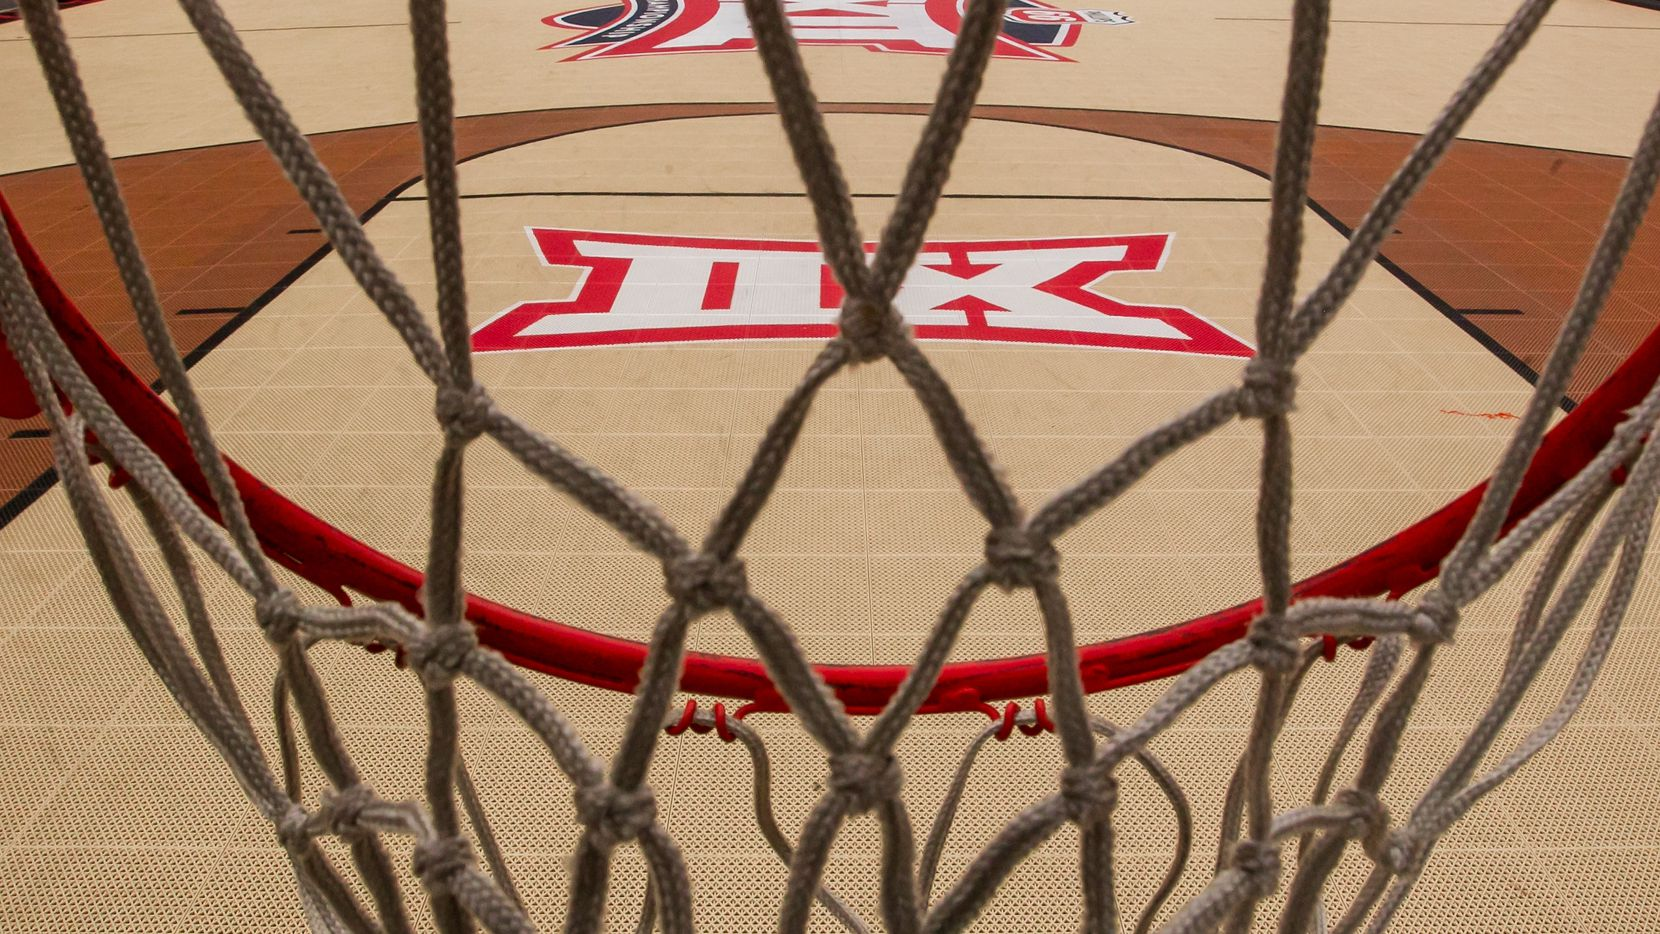 KANSAS CITY, MO - MARCH 12: An open basketball court apart of the Big 12 fan experience sits empty due to the cancellation of the Big 12 Tournament to prevent the spread of the Coronavirus (COVID-19) prior to the game between the Texas Tech Red Raiders and the Texas Longhorns, on Thursday March 12, 2020 at the Sprint Center in Kansas City, MO.  (Photo by Nick Tre. Smith/Icon Sportswire via Getty Images)